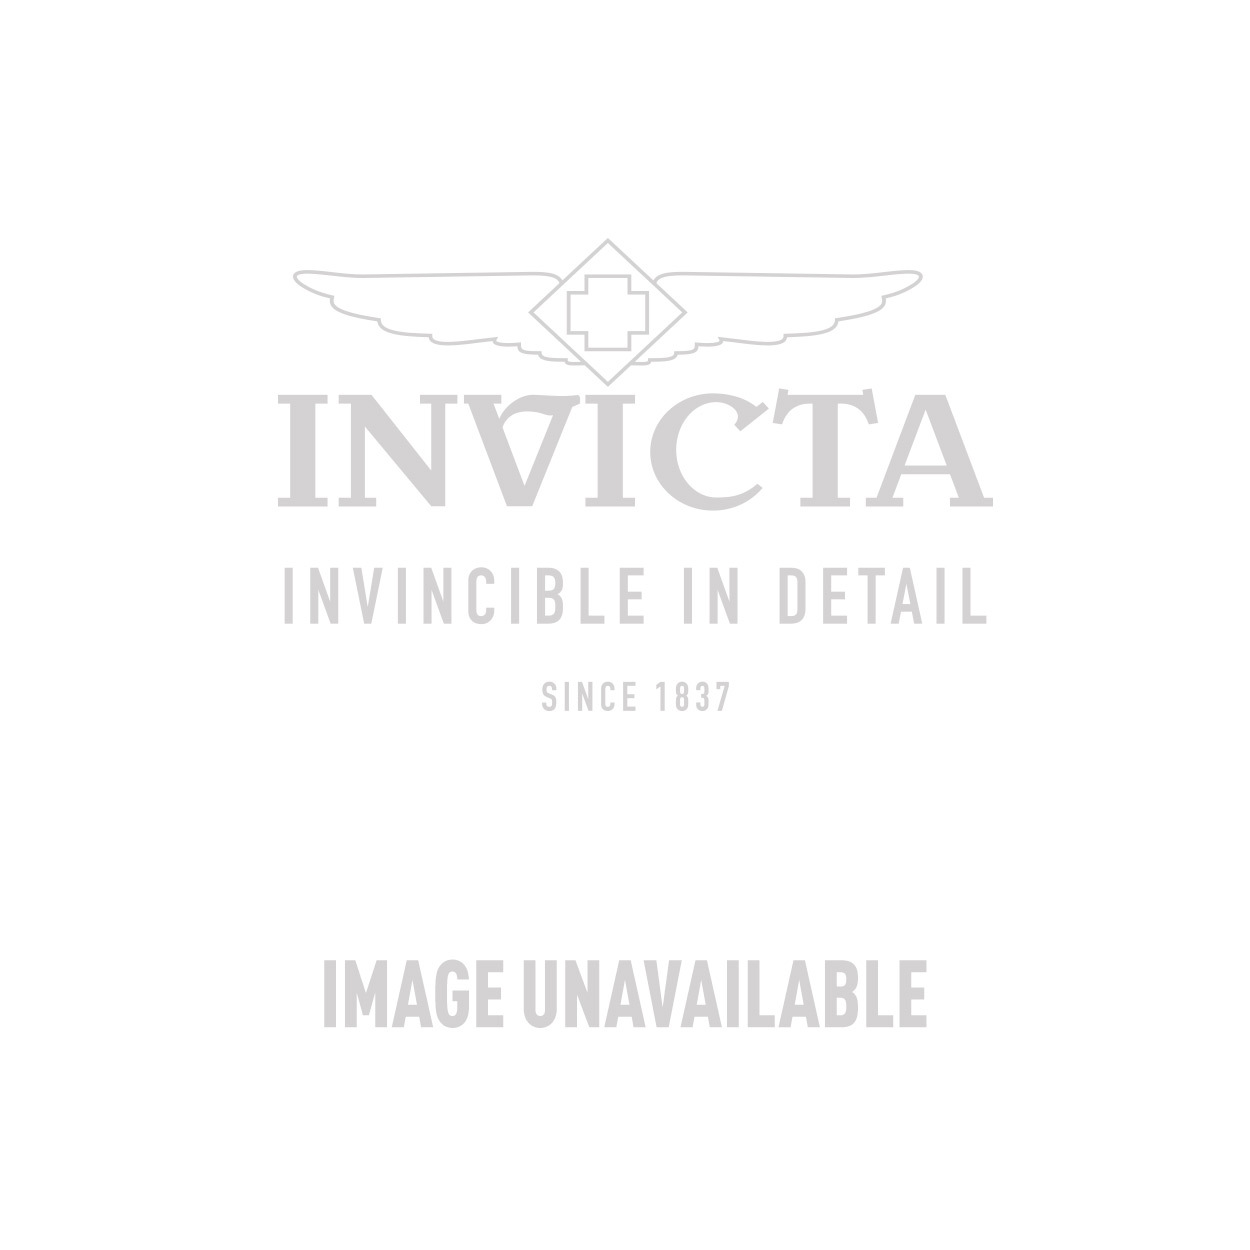 Invicta Coalition Forces Swiss Made Quartz Watch - Stainless Steel case Stainless Steel band - Model 15570